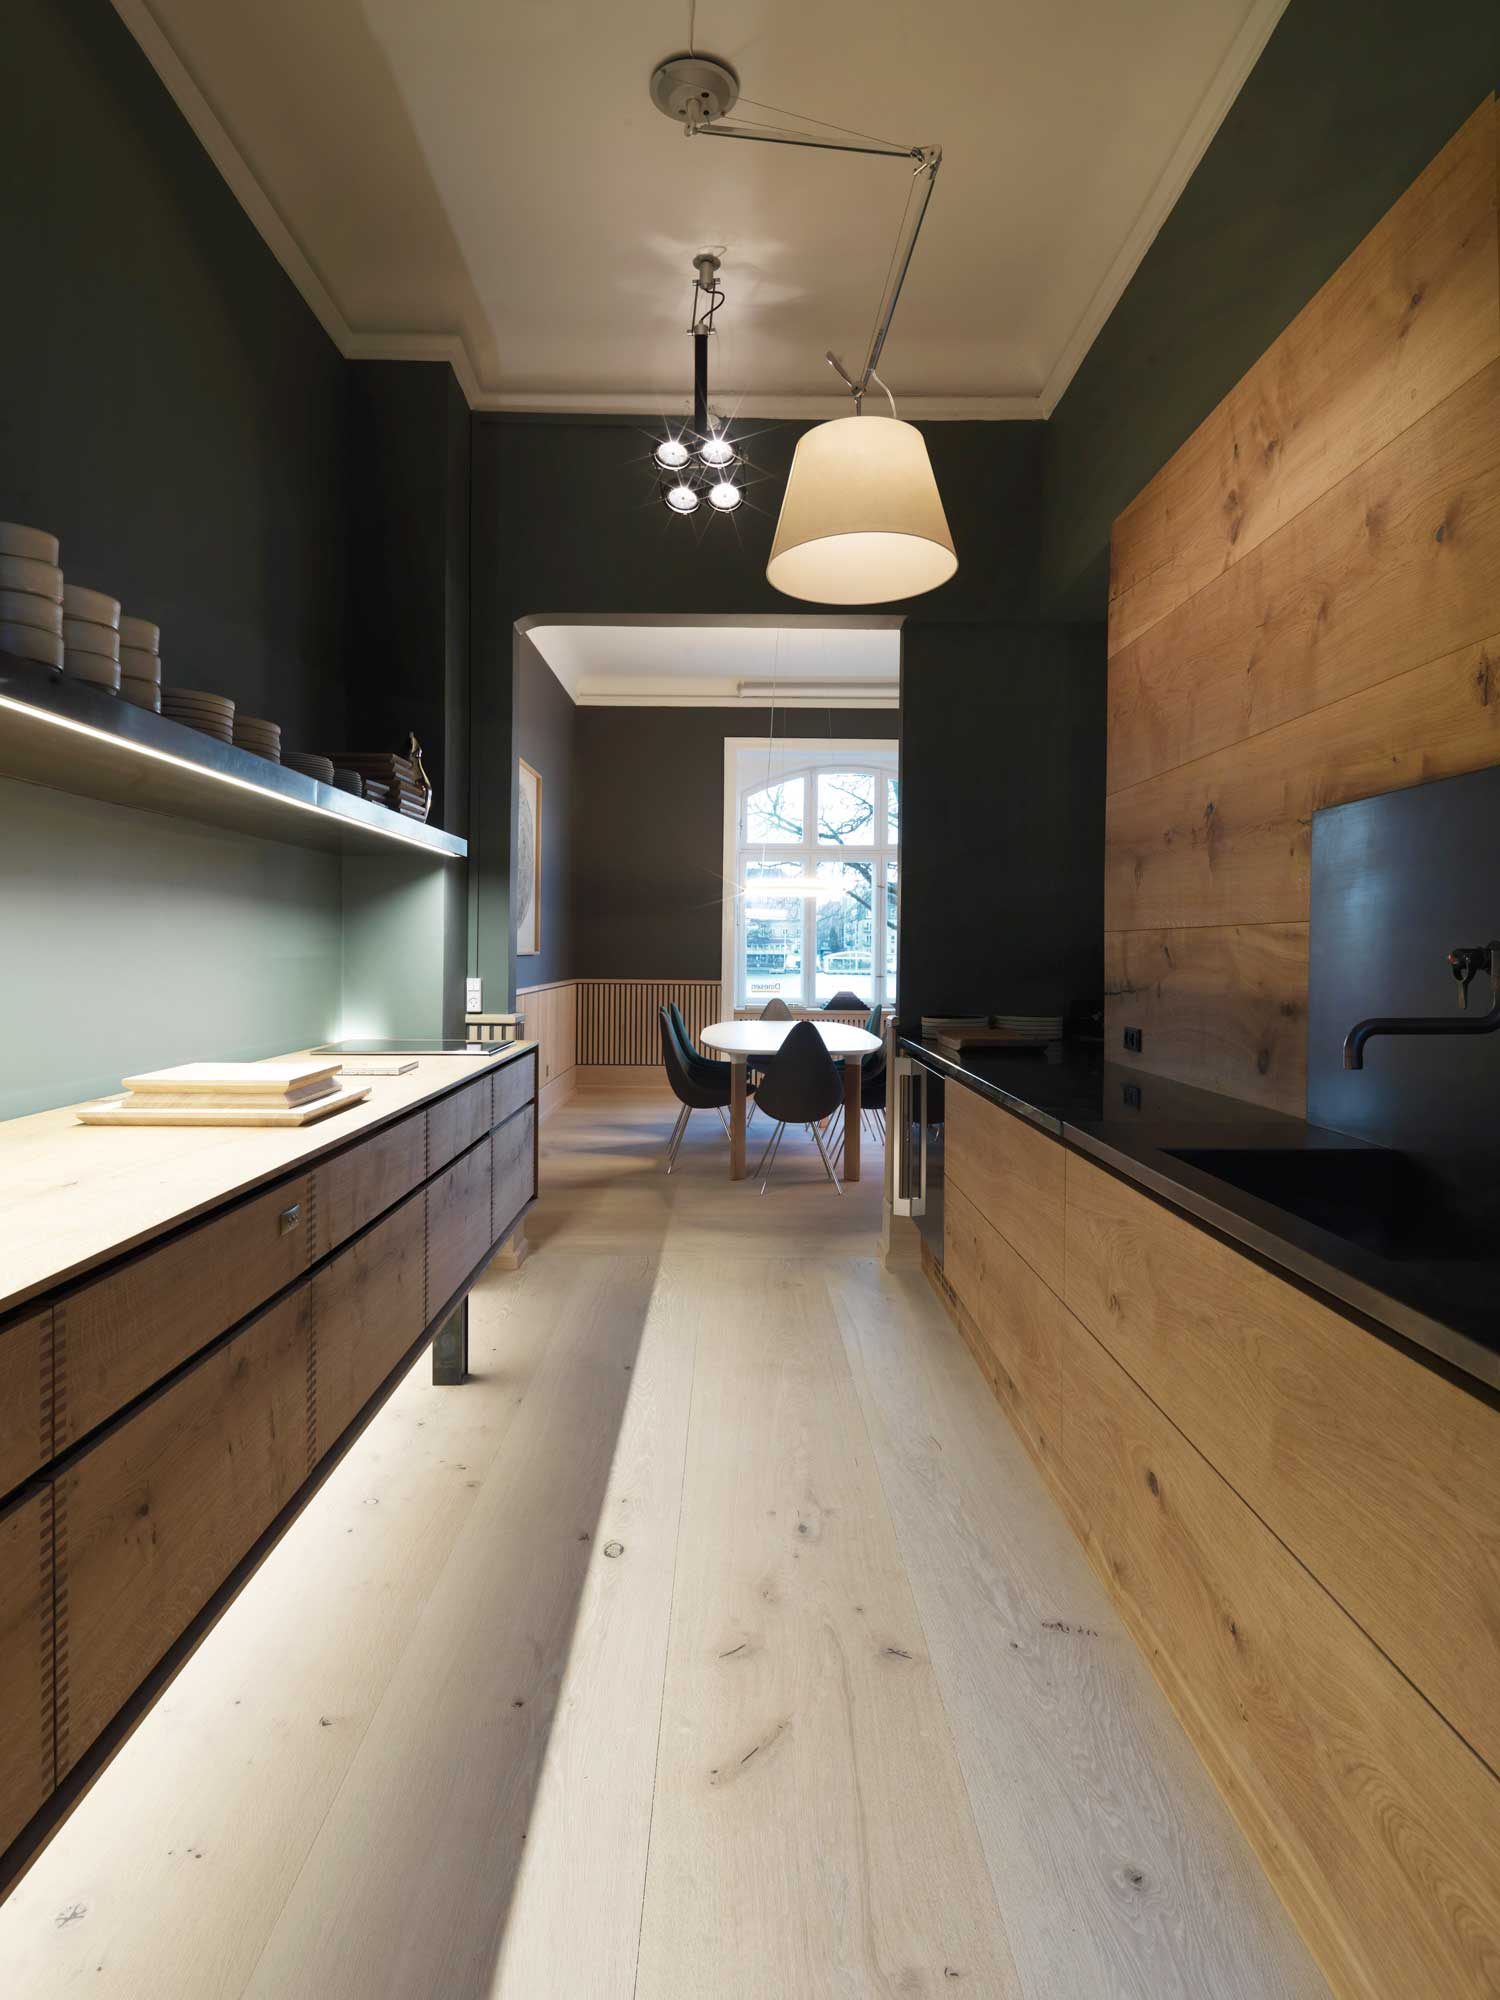 Kitchen Interior Design: Dinesen Showroom Copenhagen By OeO